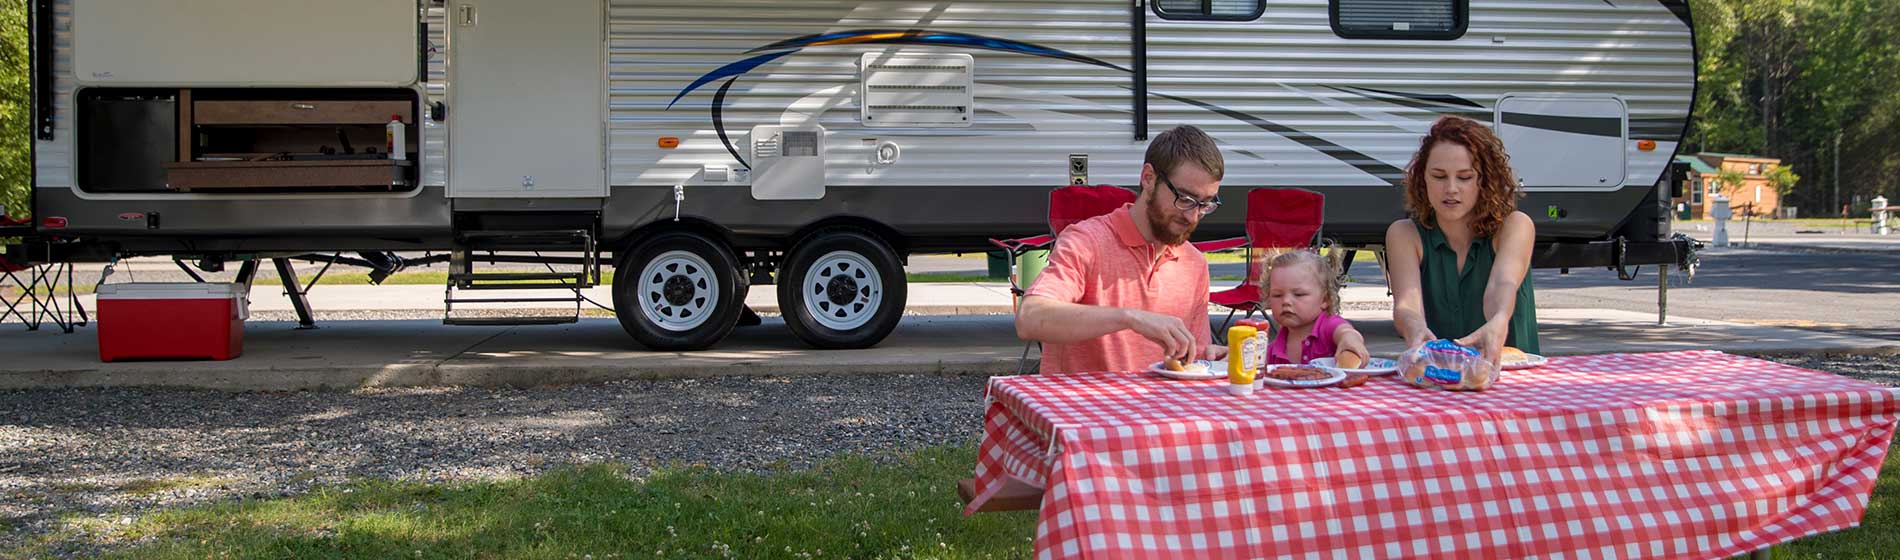 RV Sites at Kings Dominion's KOA Camp Site